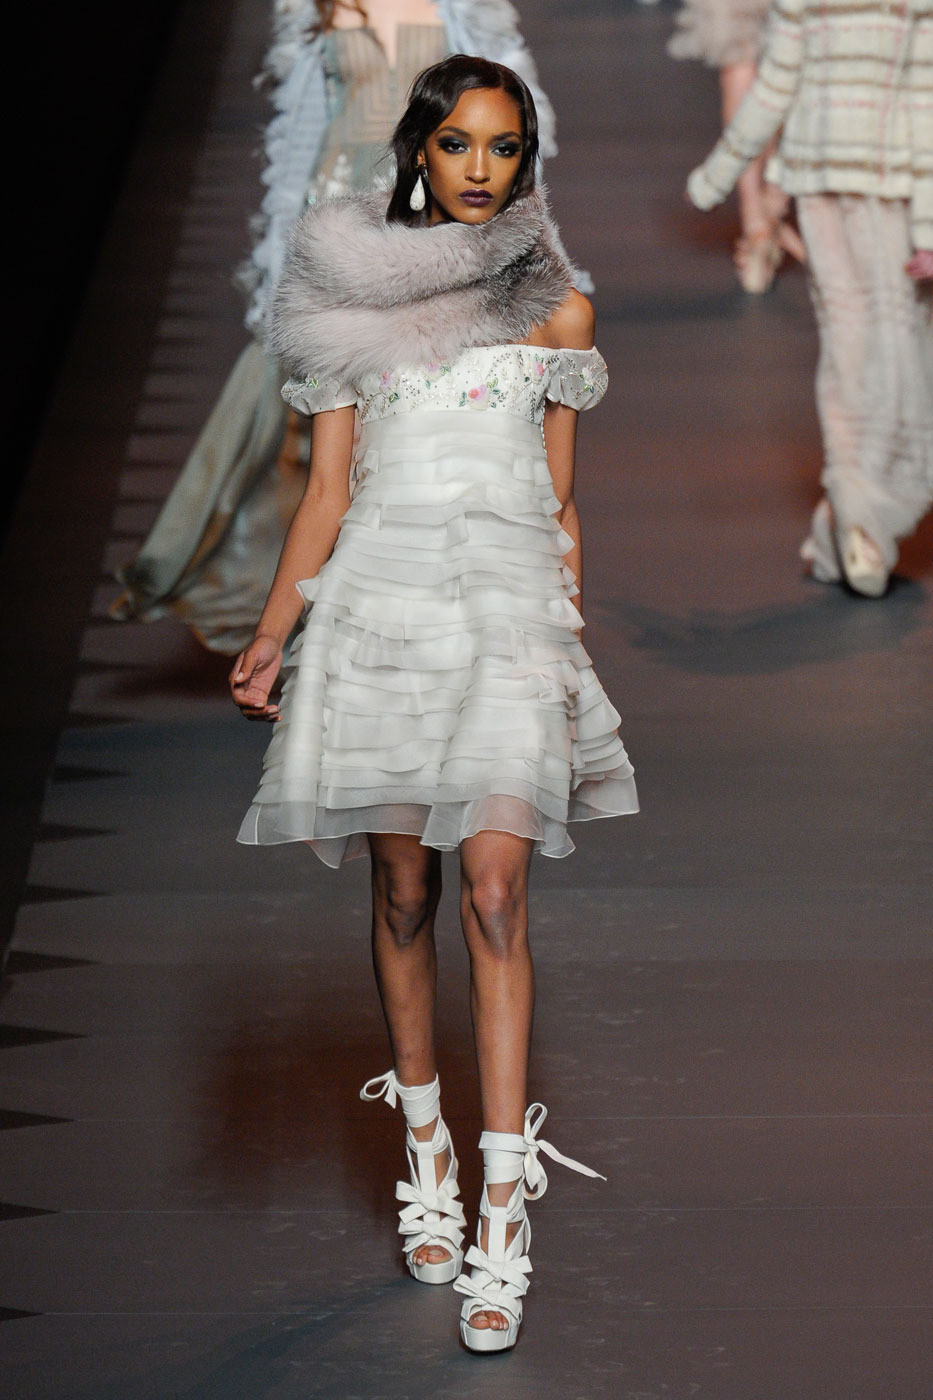 via fashioned by love | Christian Dior Fall/Winter 2011 collection by John Galliano